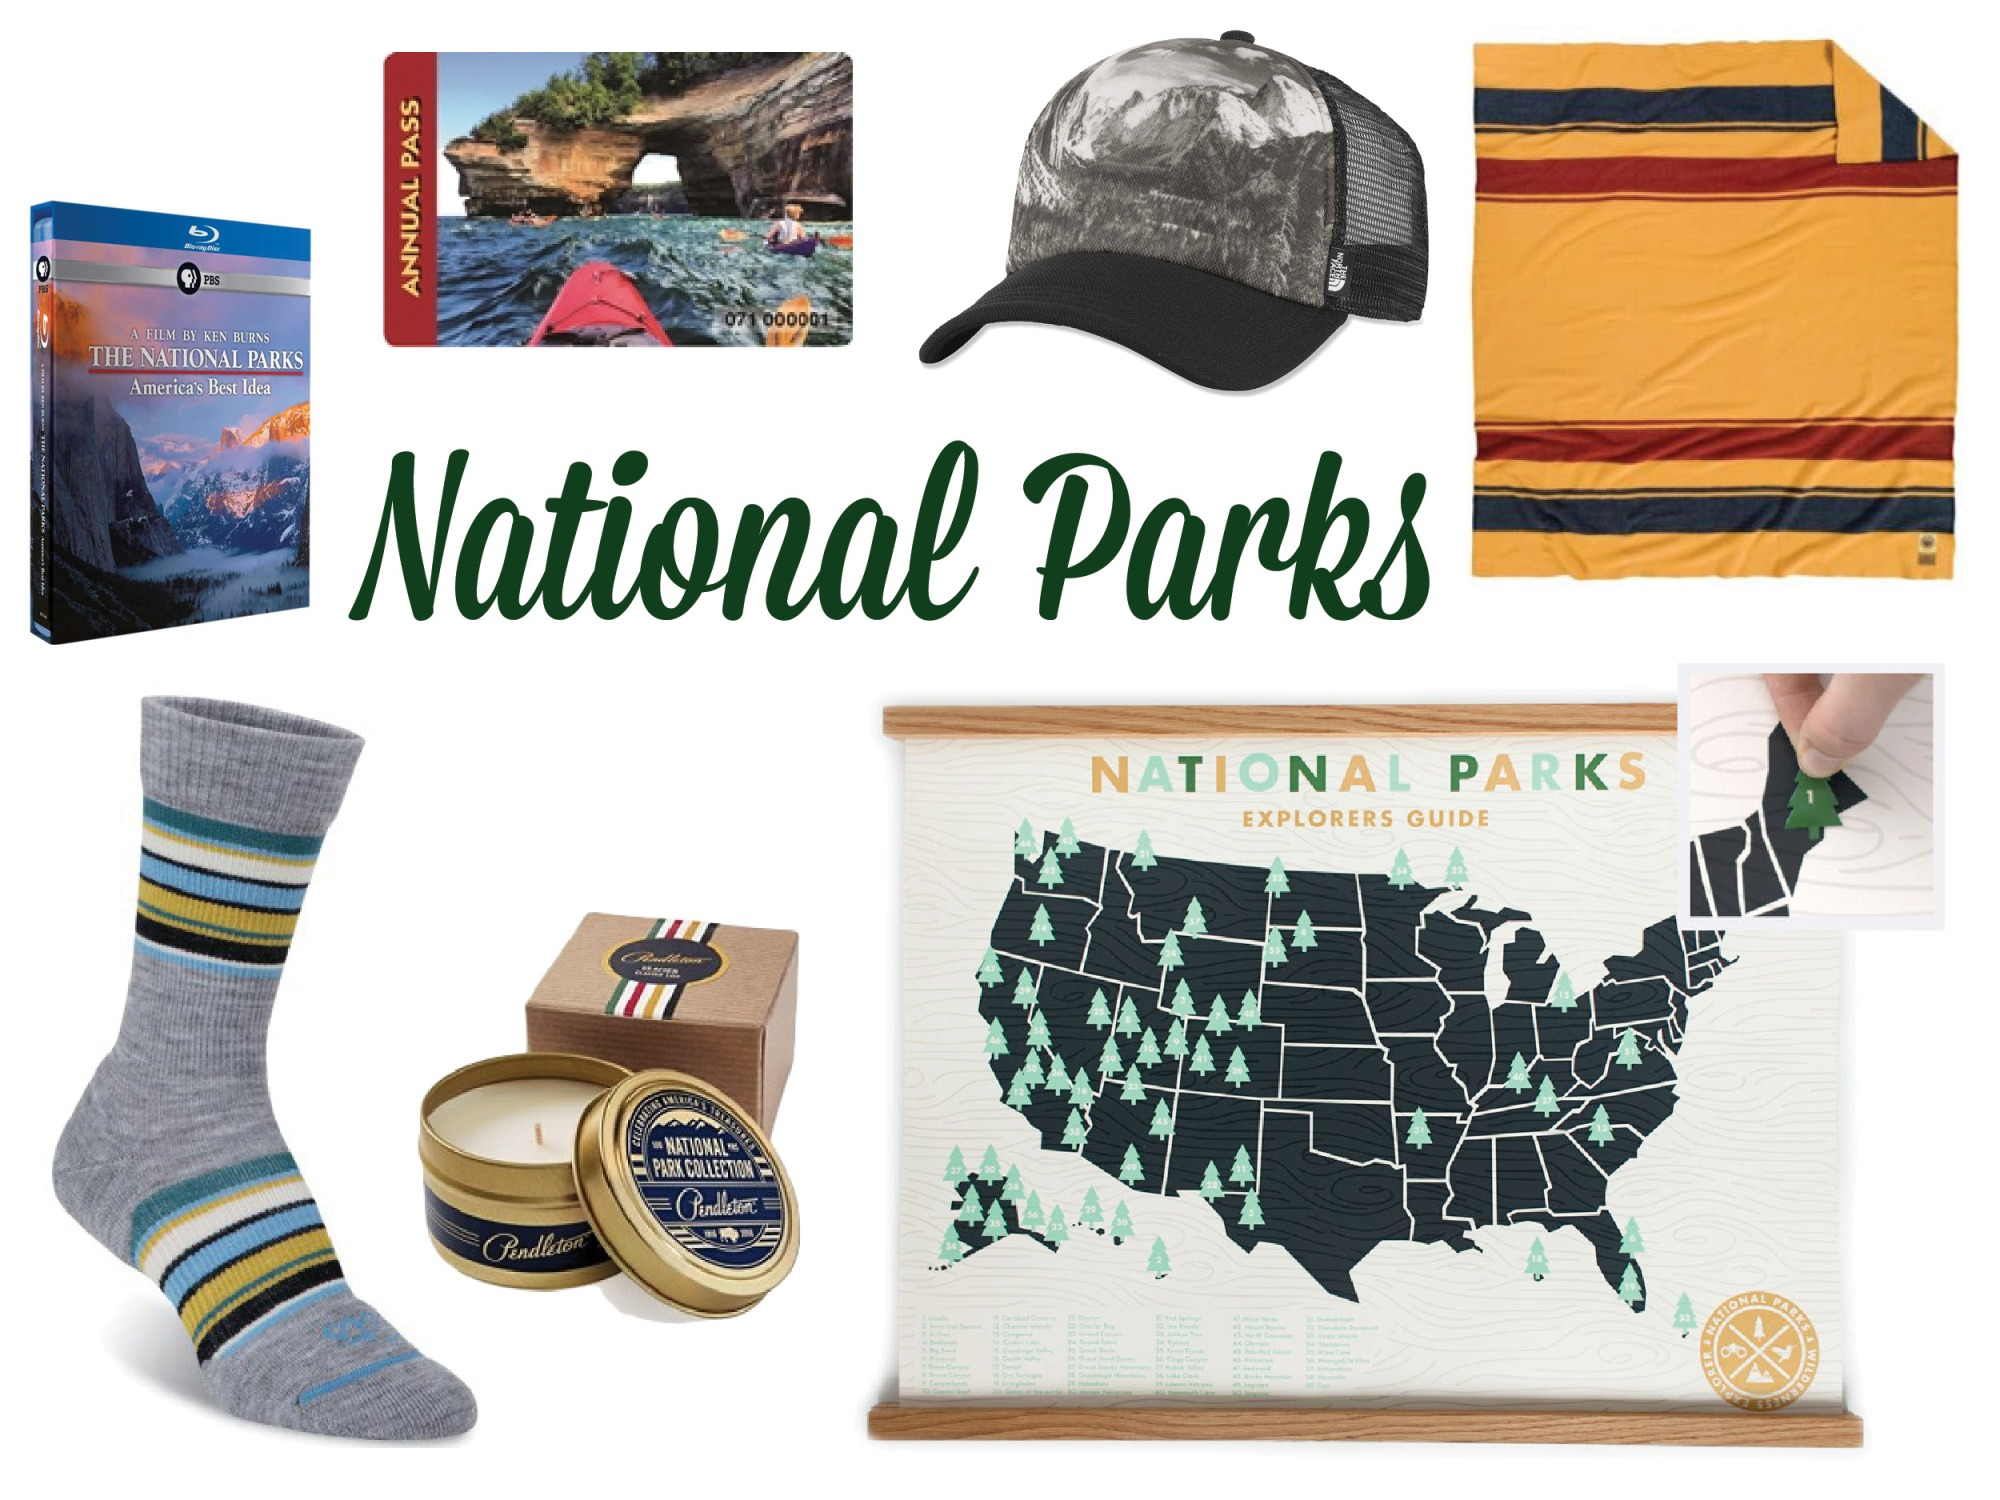 nationalparks